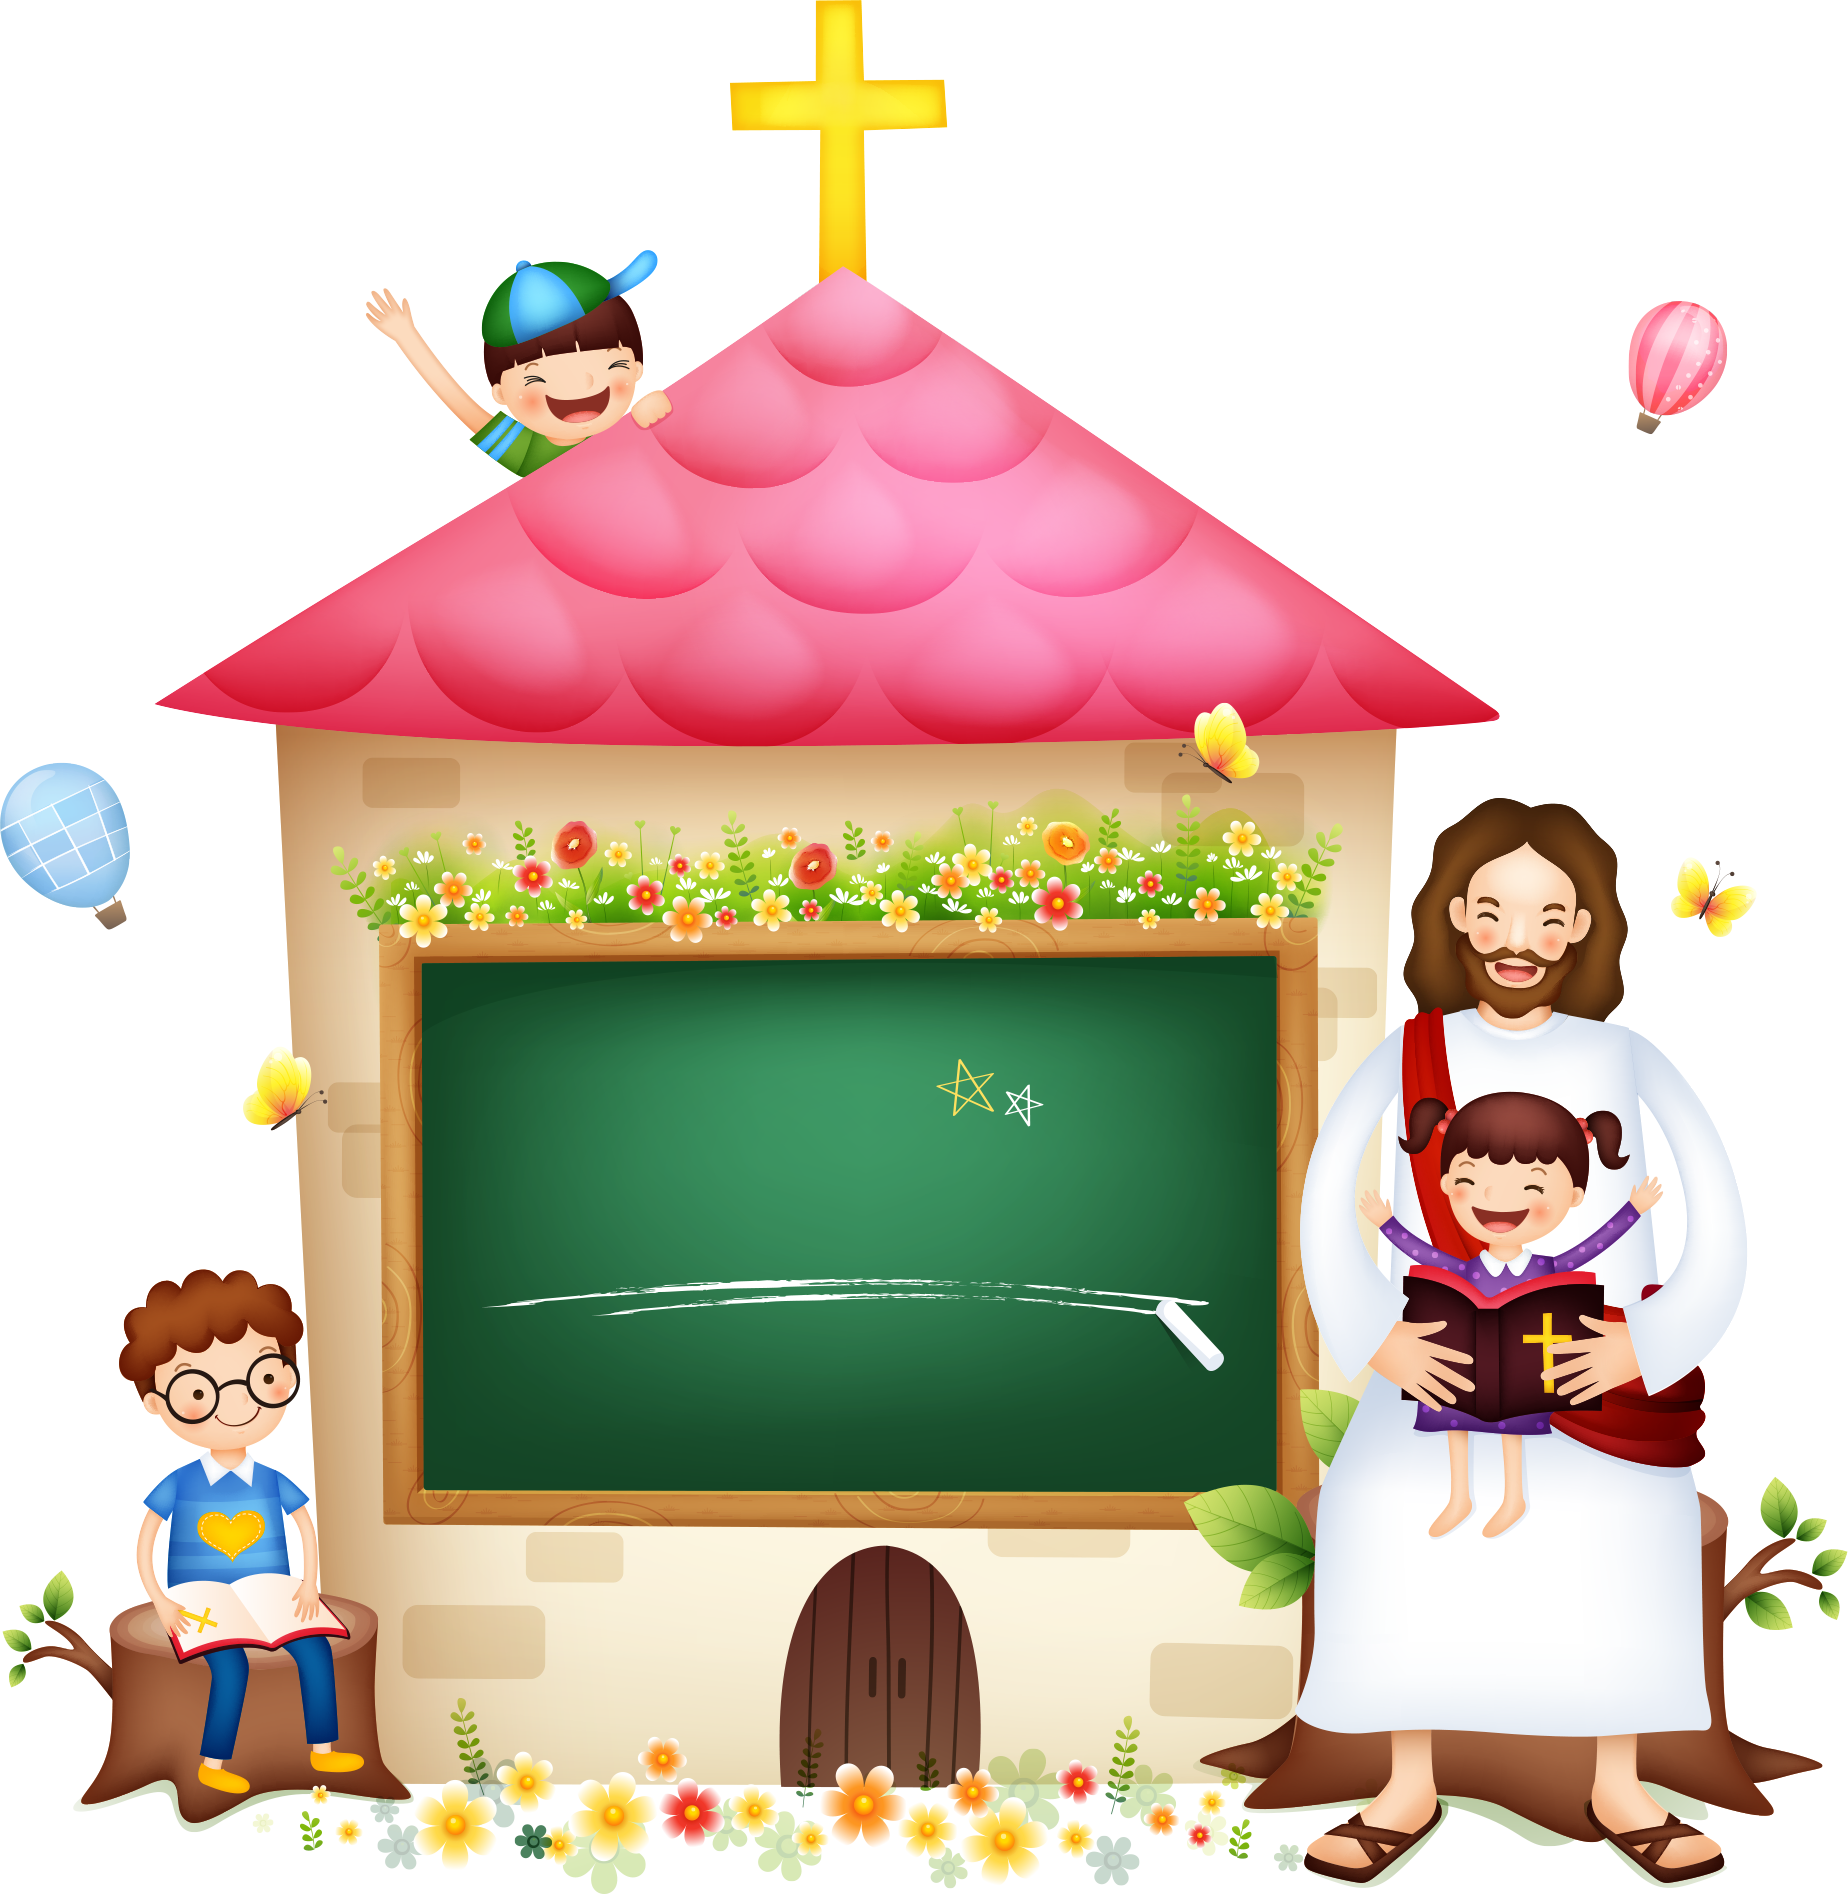 Bible Illustration Jesus Religion Christianity With Children PNG Image